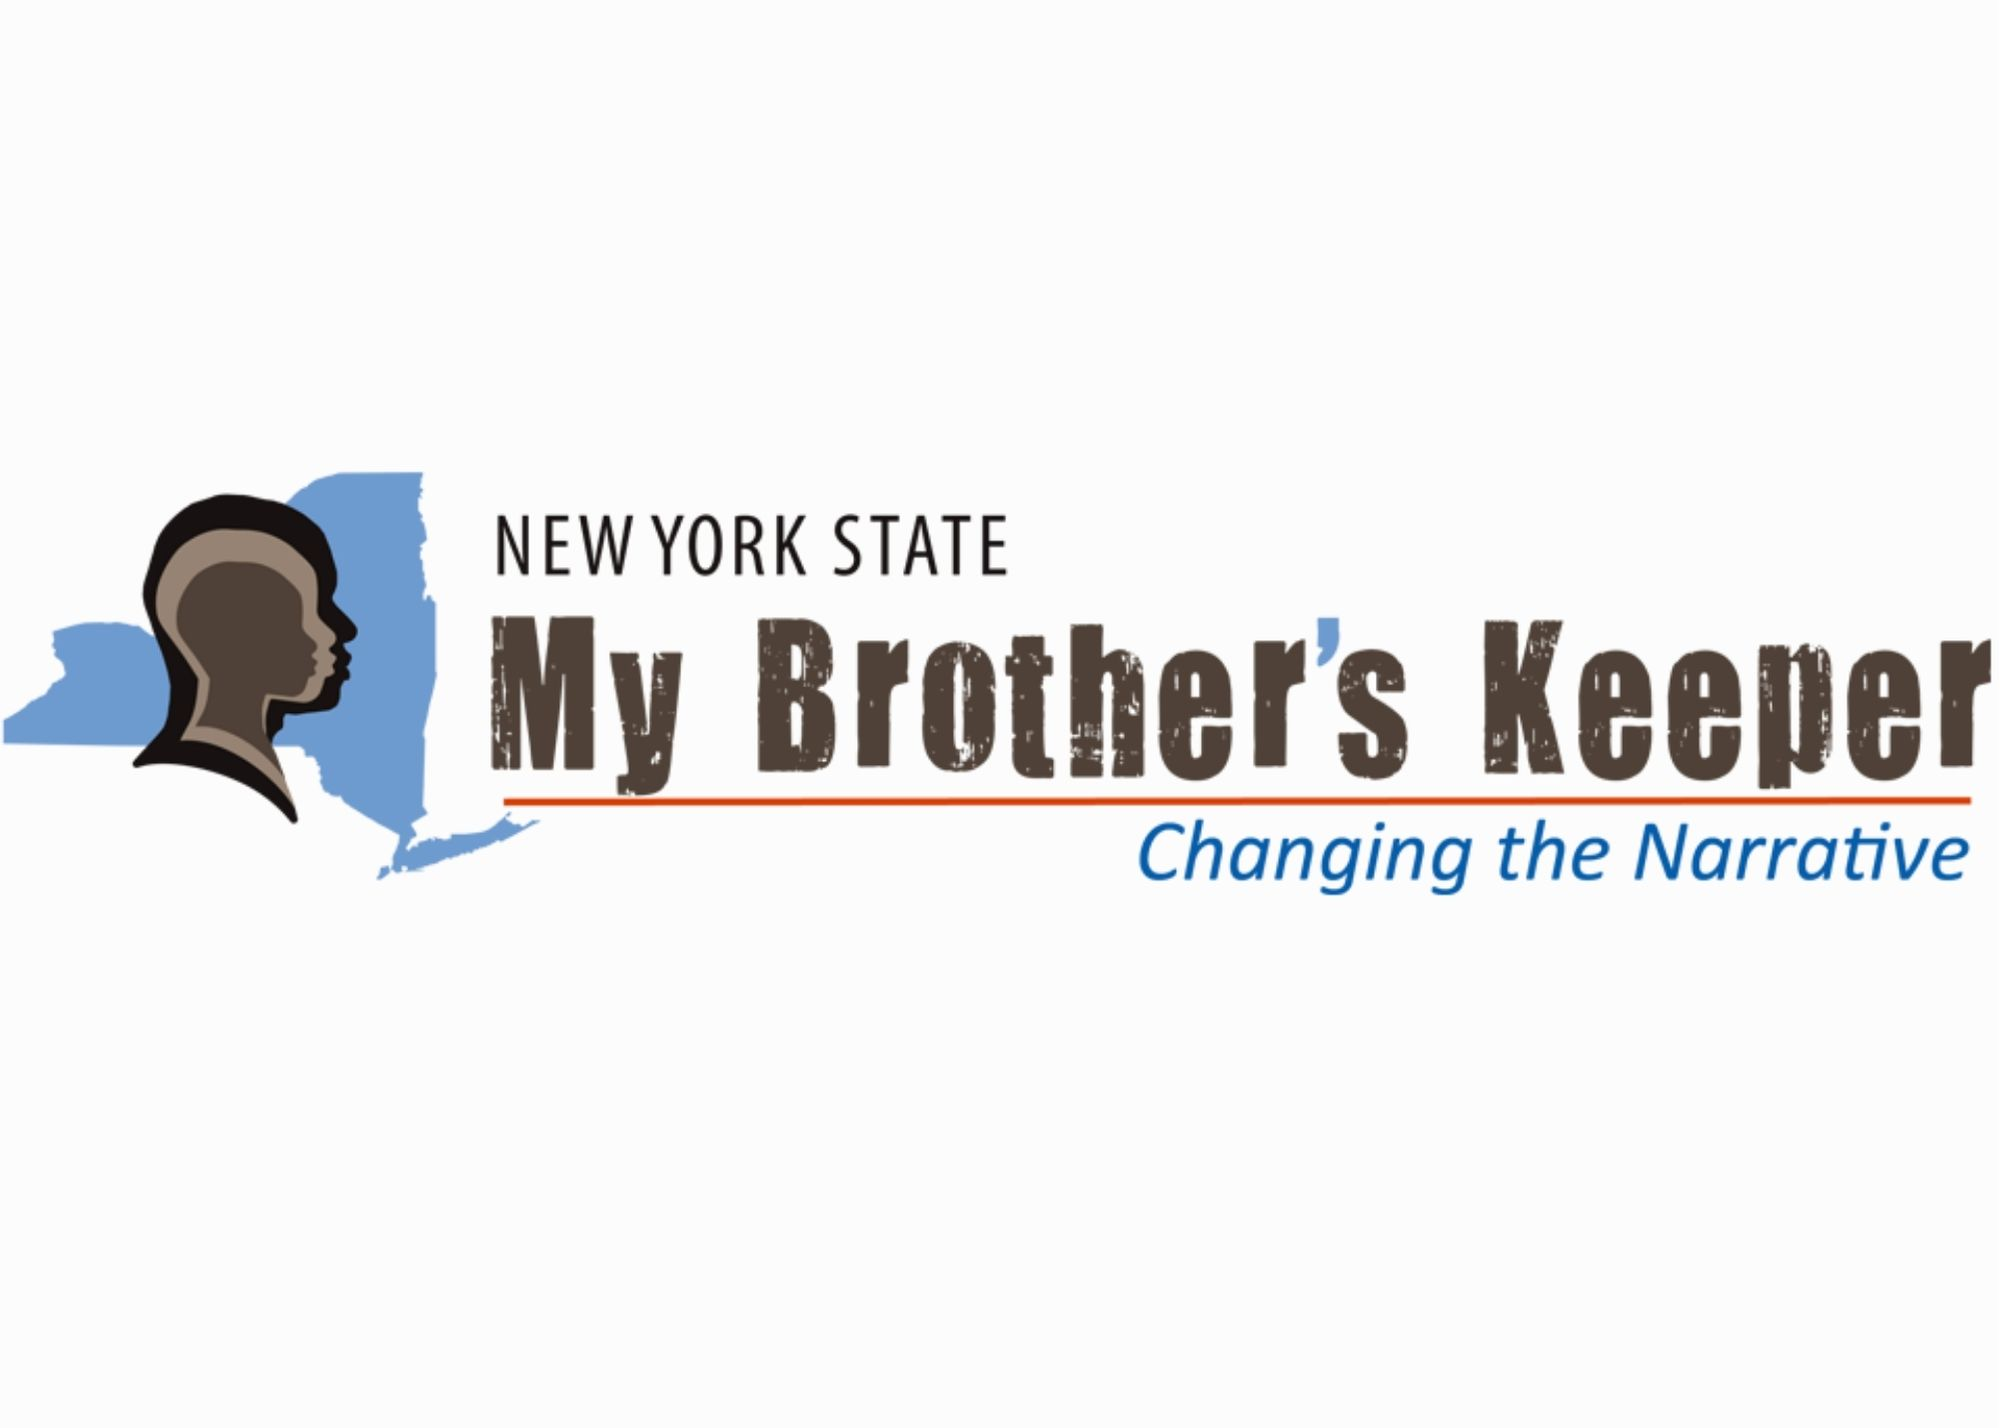 My Brother's Keeper - Changing the Narrative